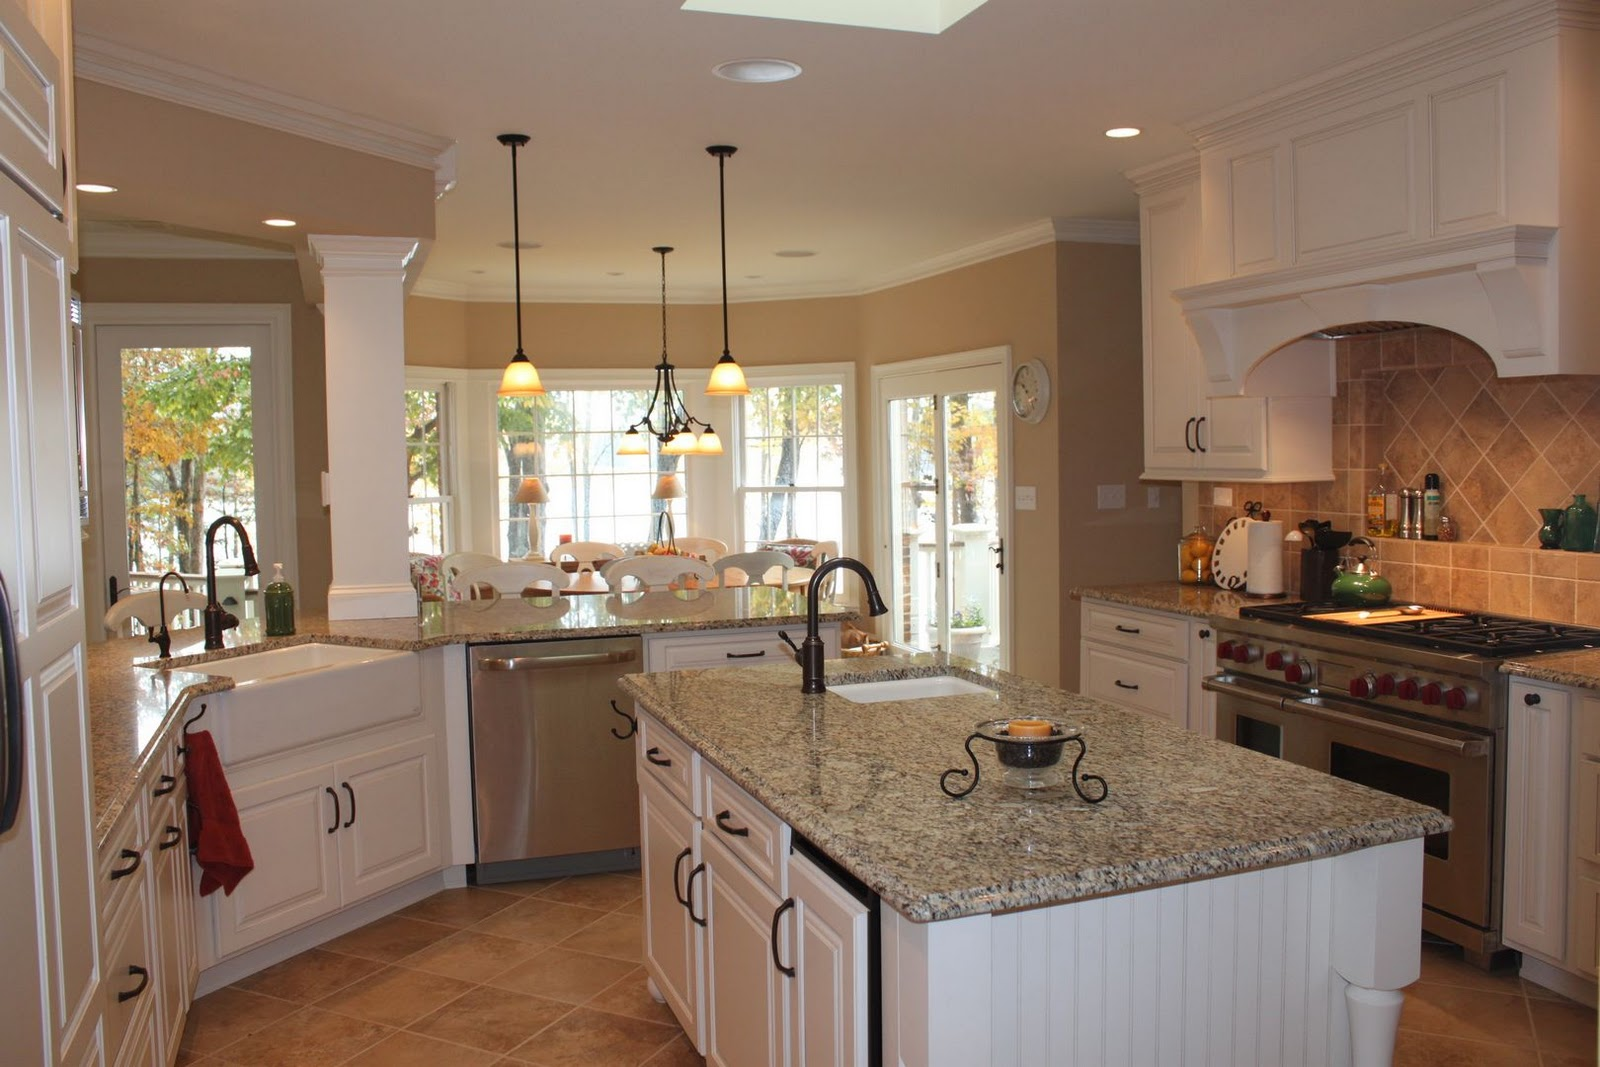 A design build remodeling company specializing in kitchen remodeling tracy has over 30 years experience in the construction industry and also hosts a